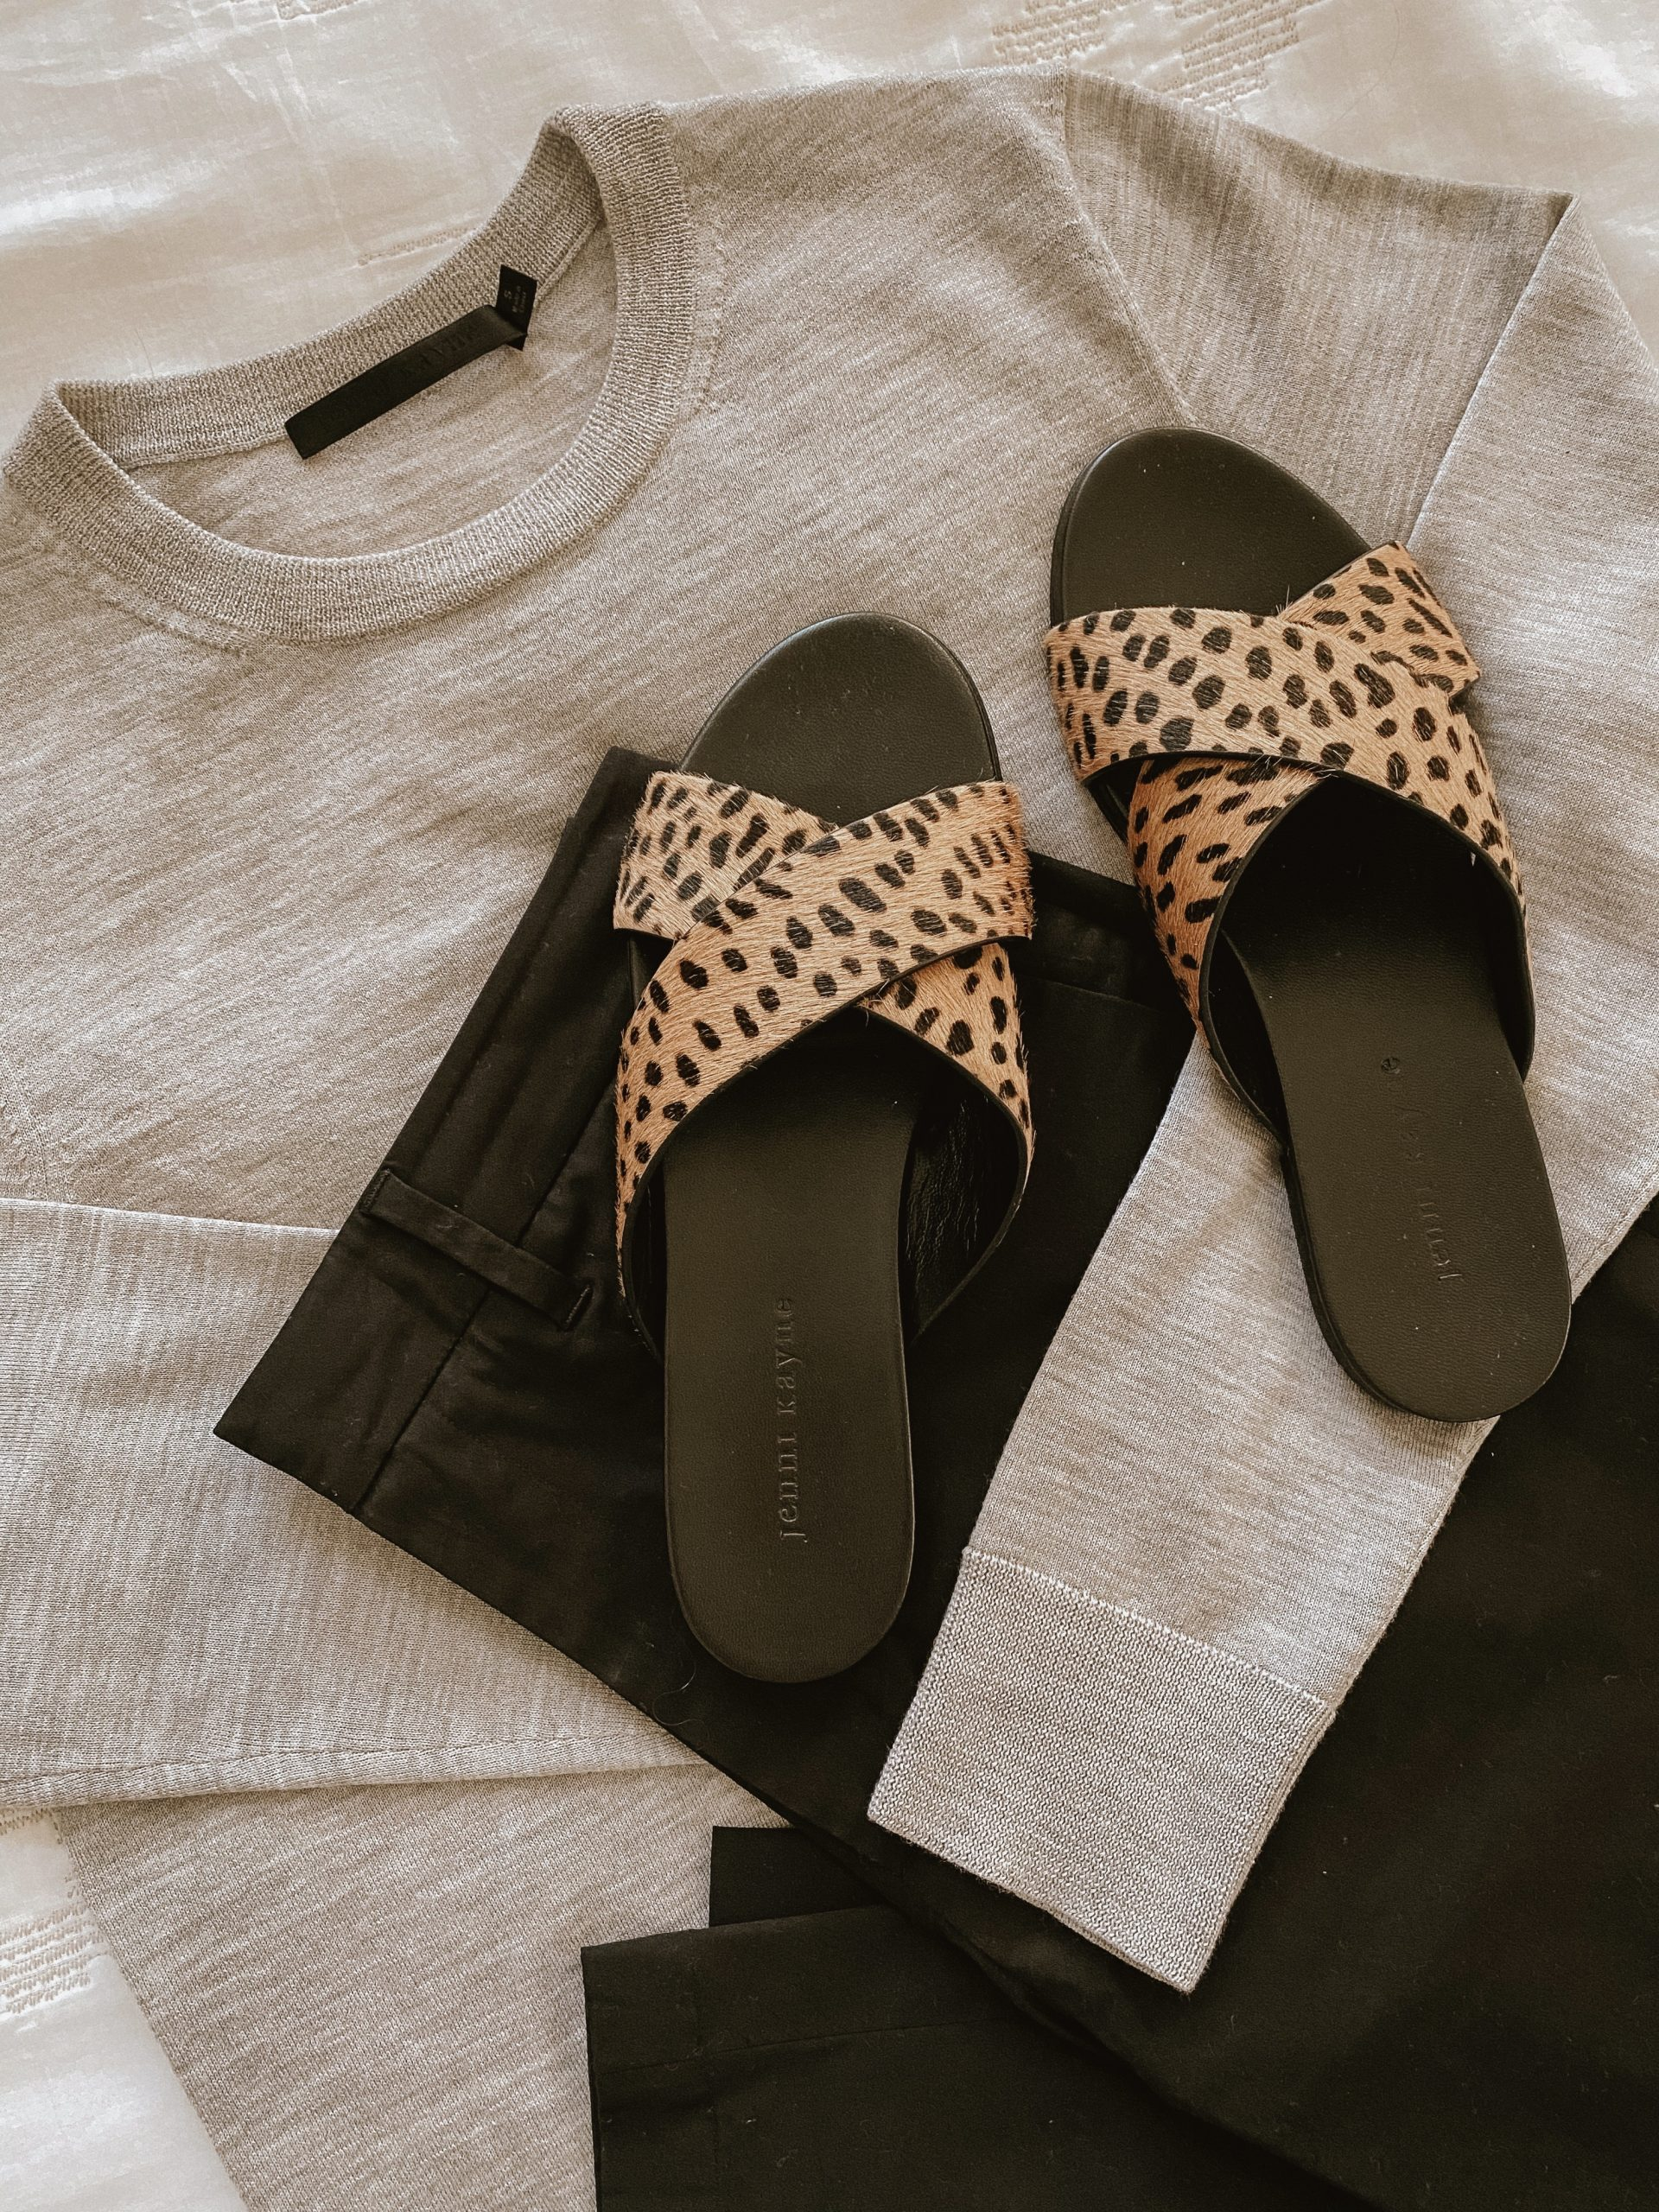 A review of the California Lifestyle Brand Jenni Kayne. Flatlay with Crosby Sweater, Twill Pants, Crossover sandals